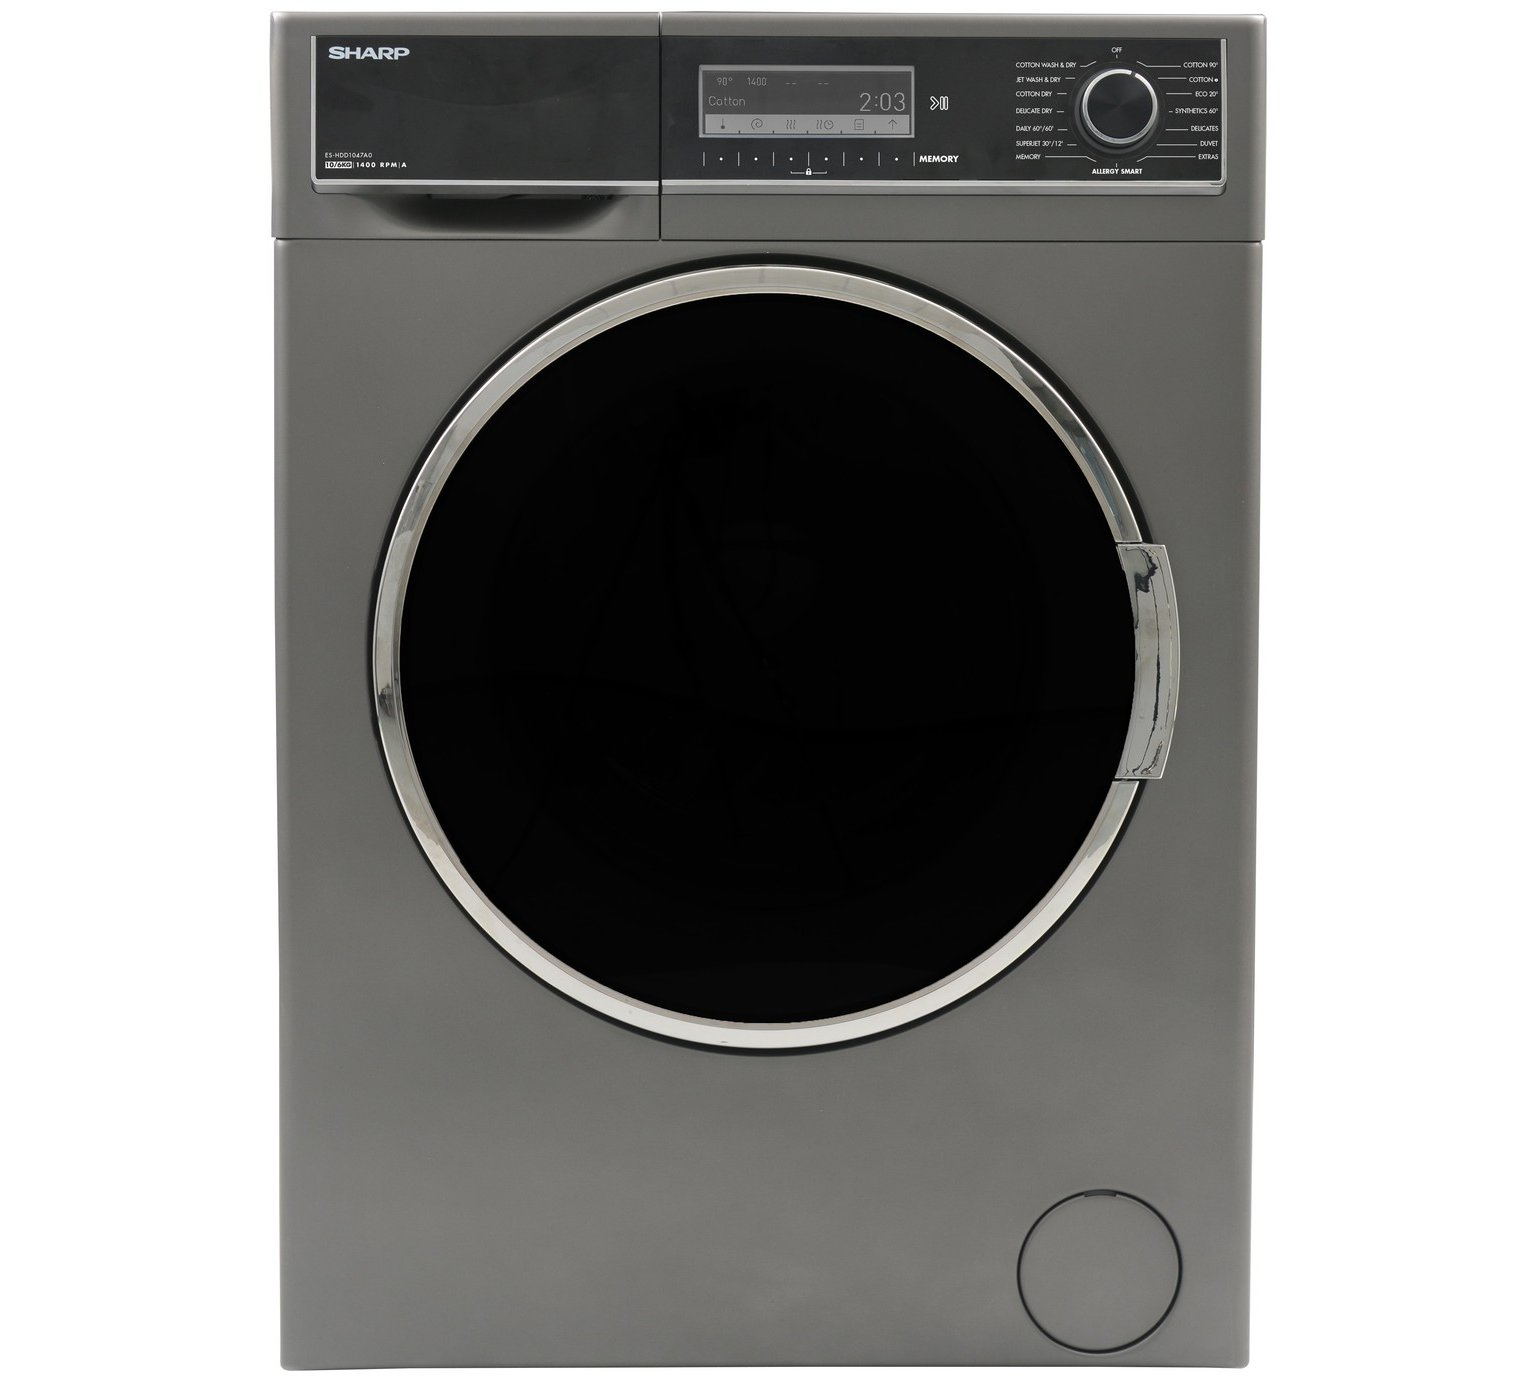 Sharp ES-HDD1047A0 10/6KG 1400 Spin Washer Dryer- Anthracite